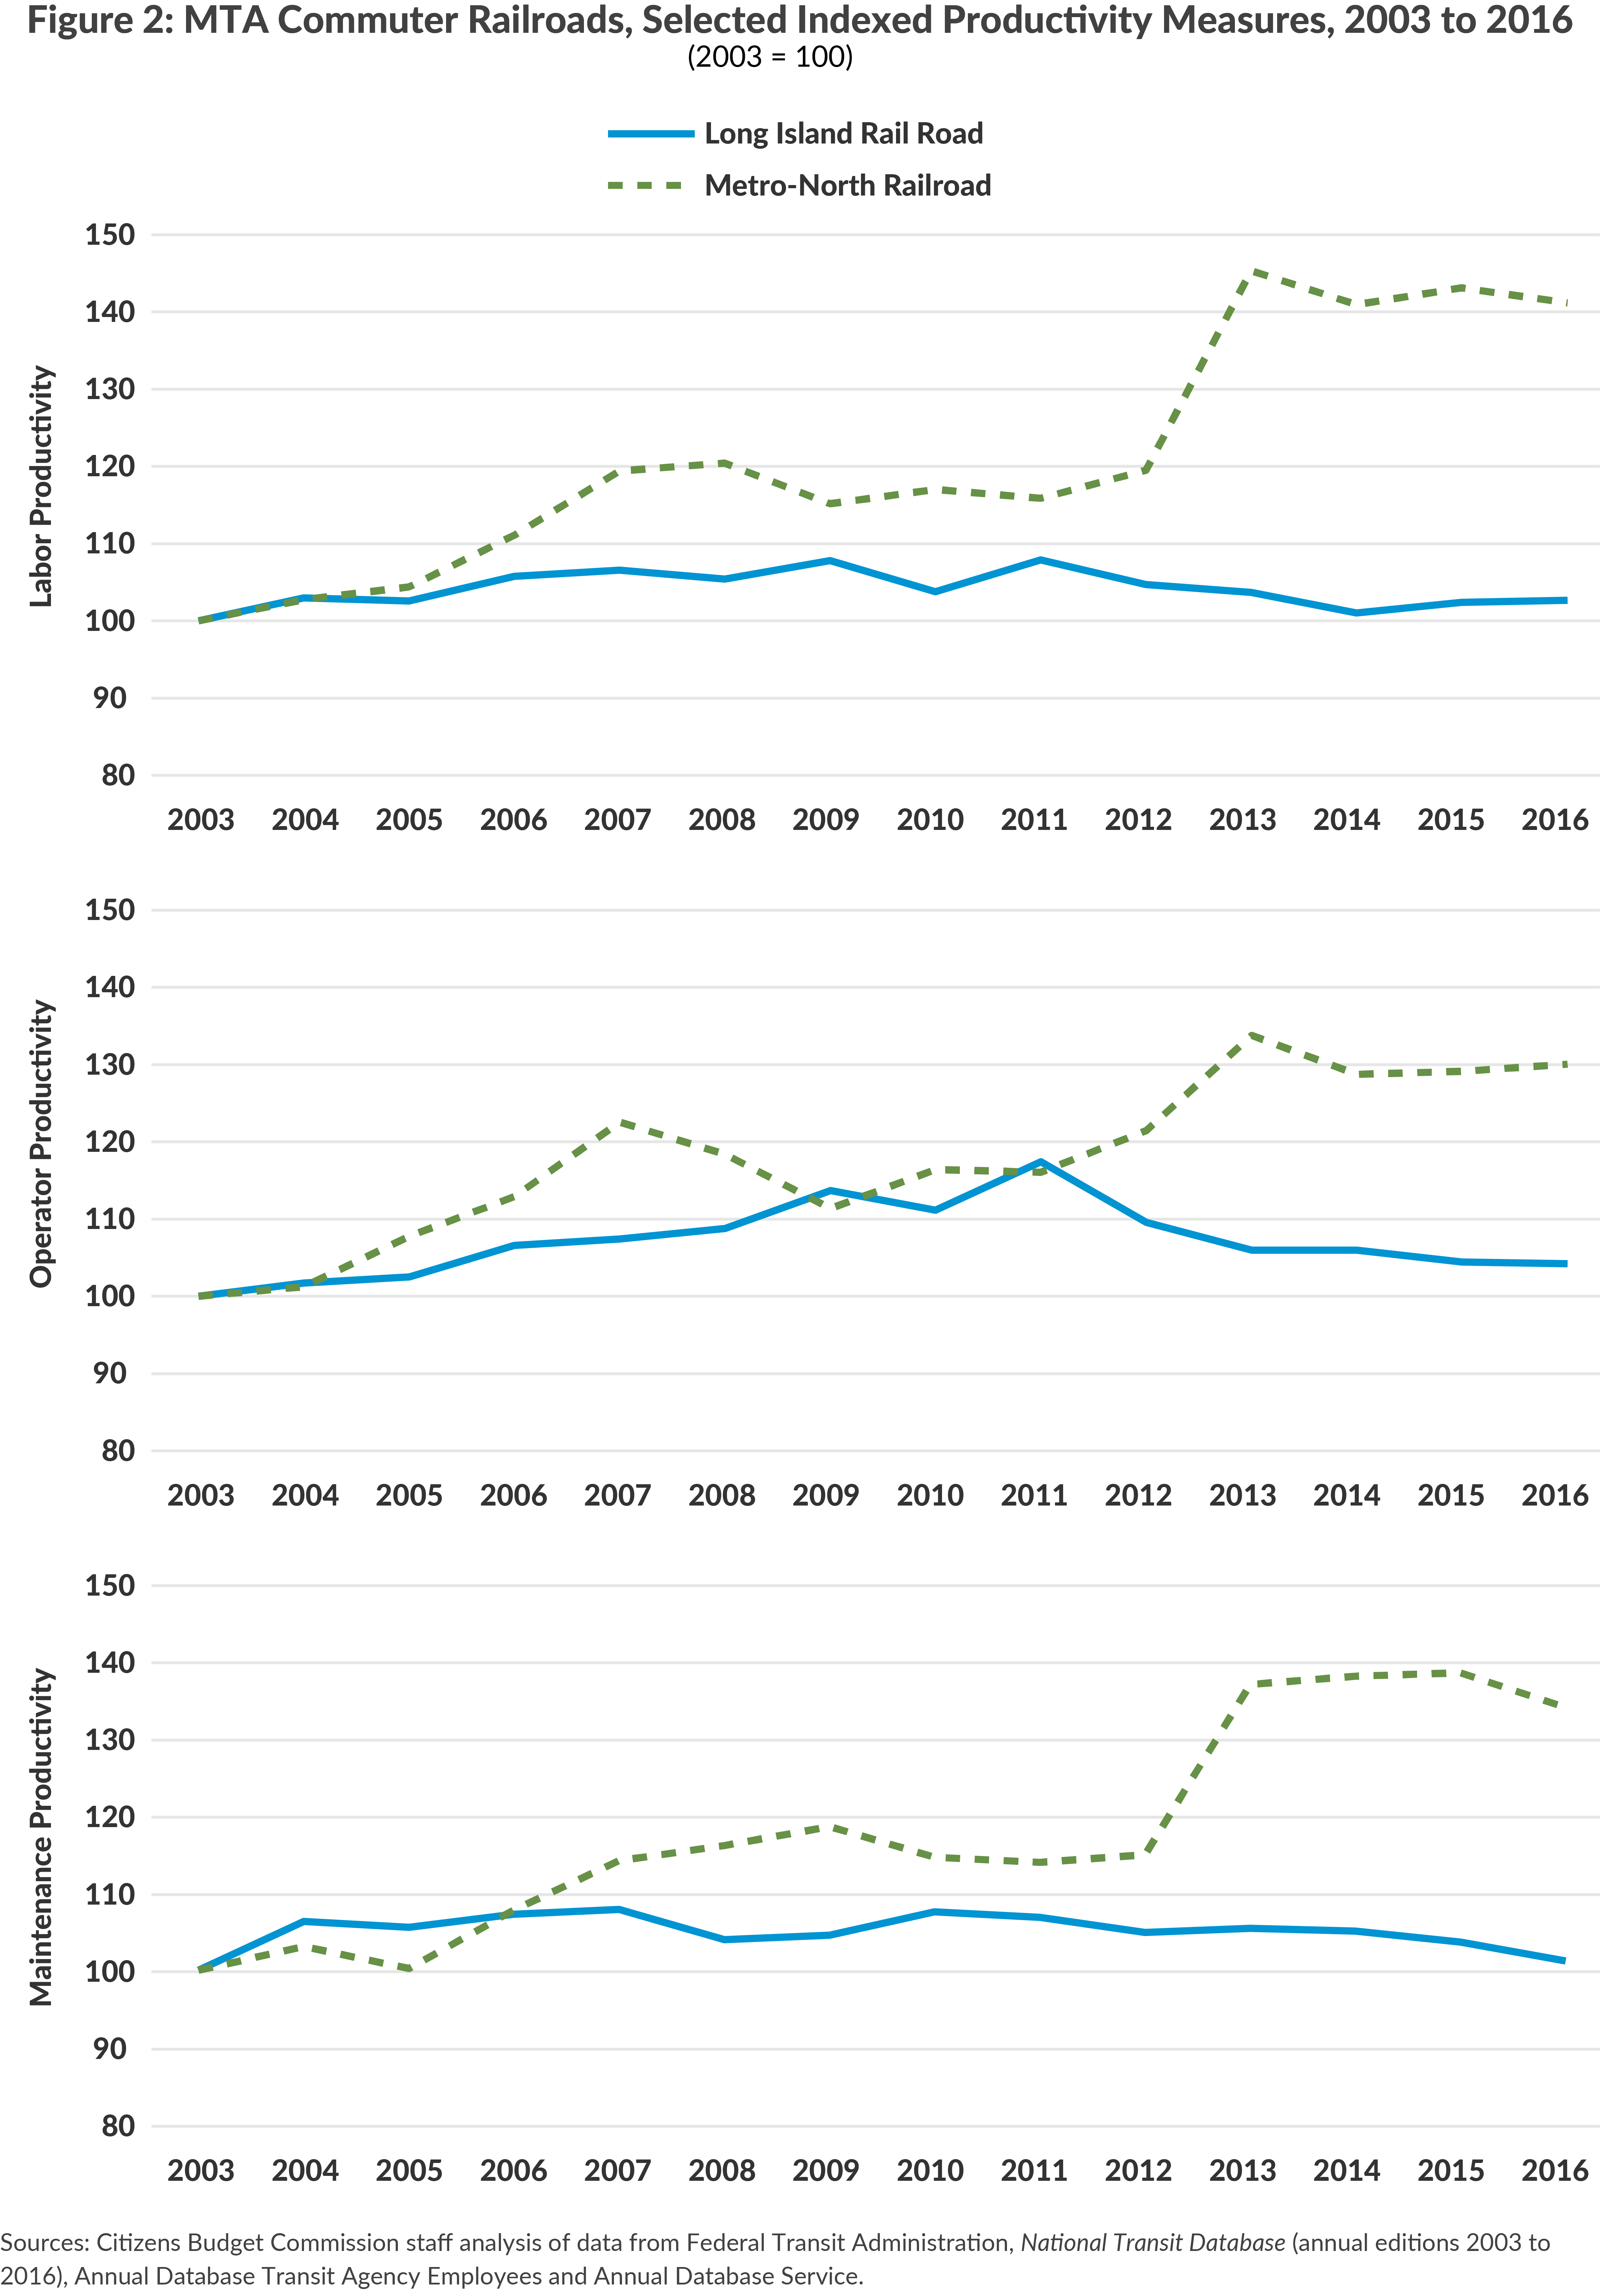 Figure 2: MTA Commuter Railroads, Selected Indexed Productivity Measures, 2003 to 2016